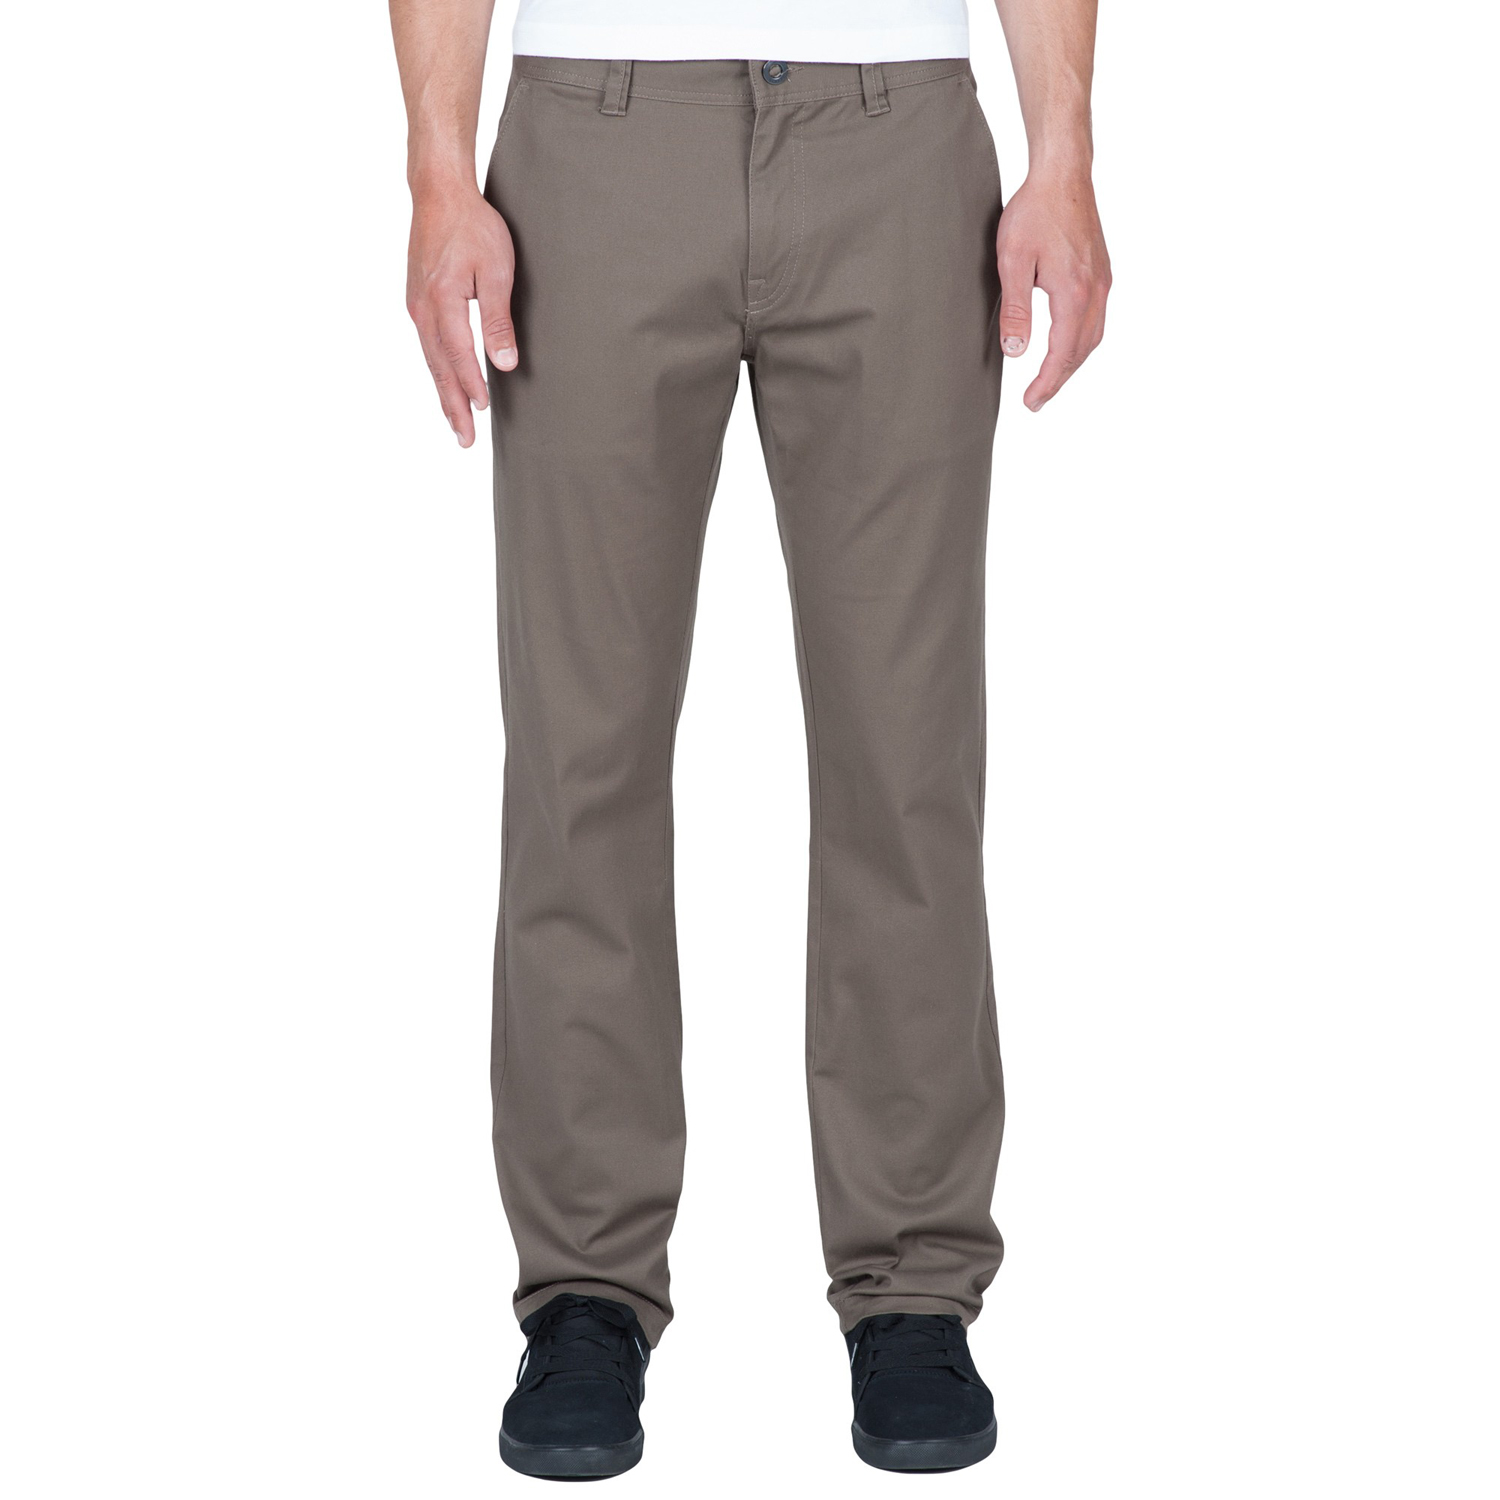 Chino Pants mushroom Frickin Volcom Modern Stretch q1WZAFY